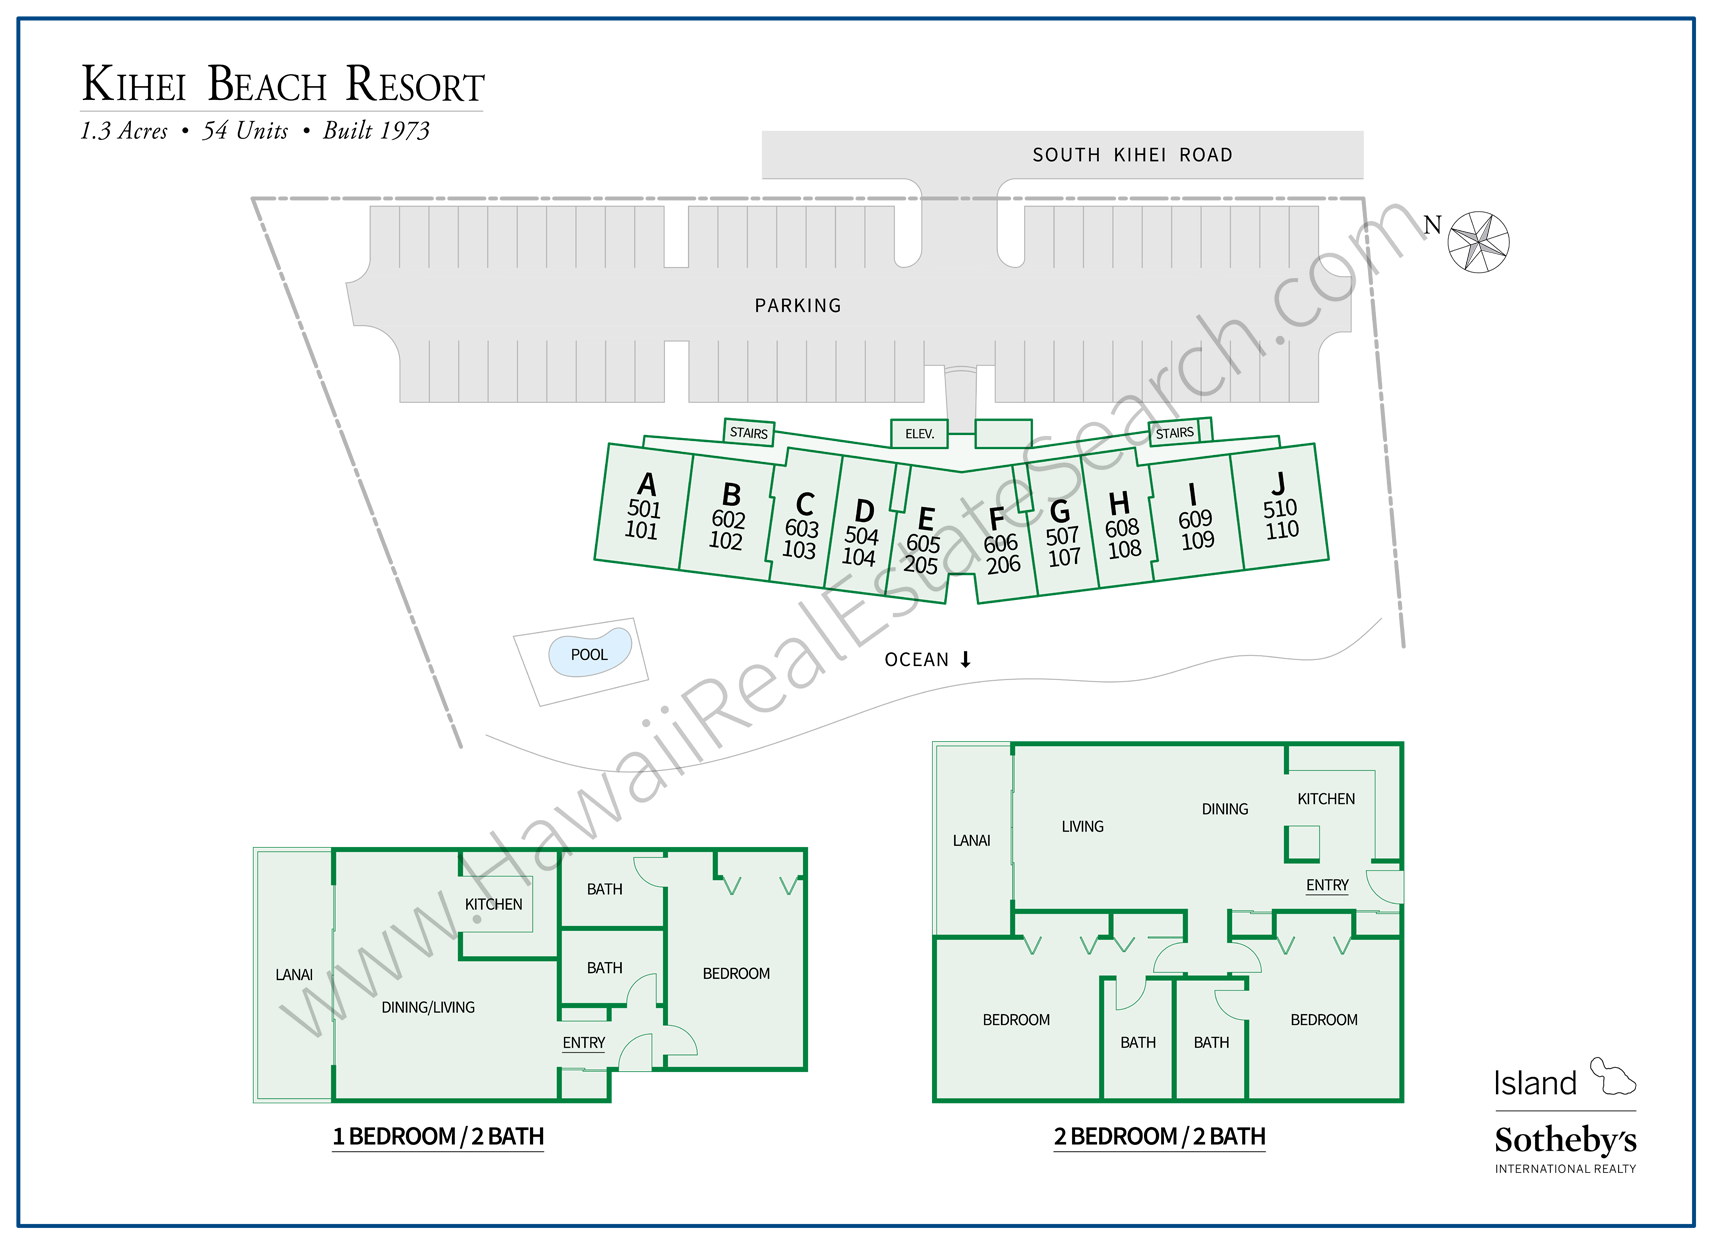 Kihei Beach Resort Map